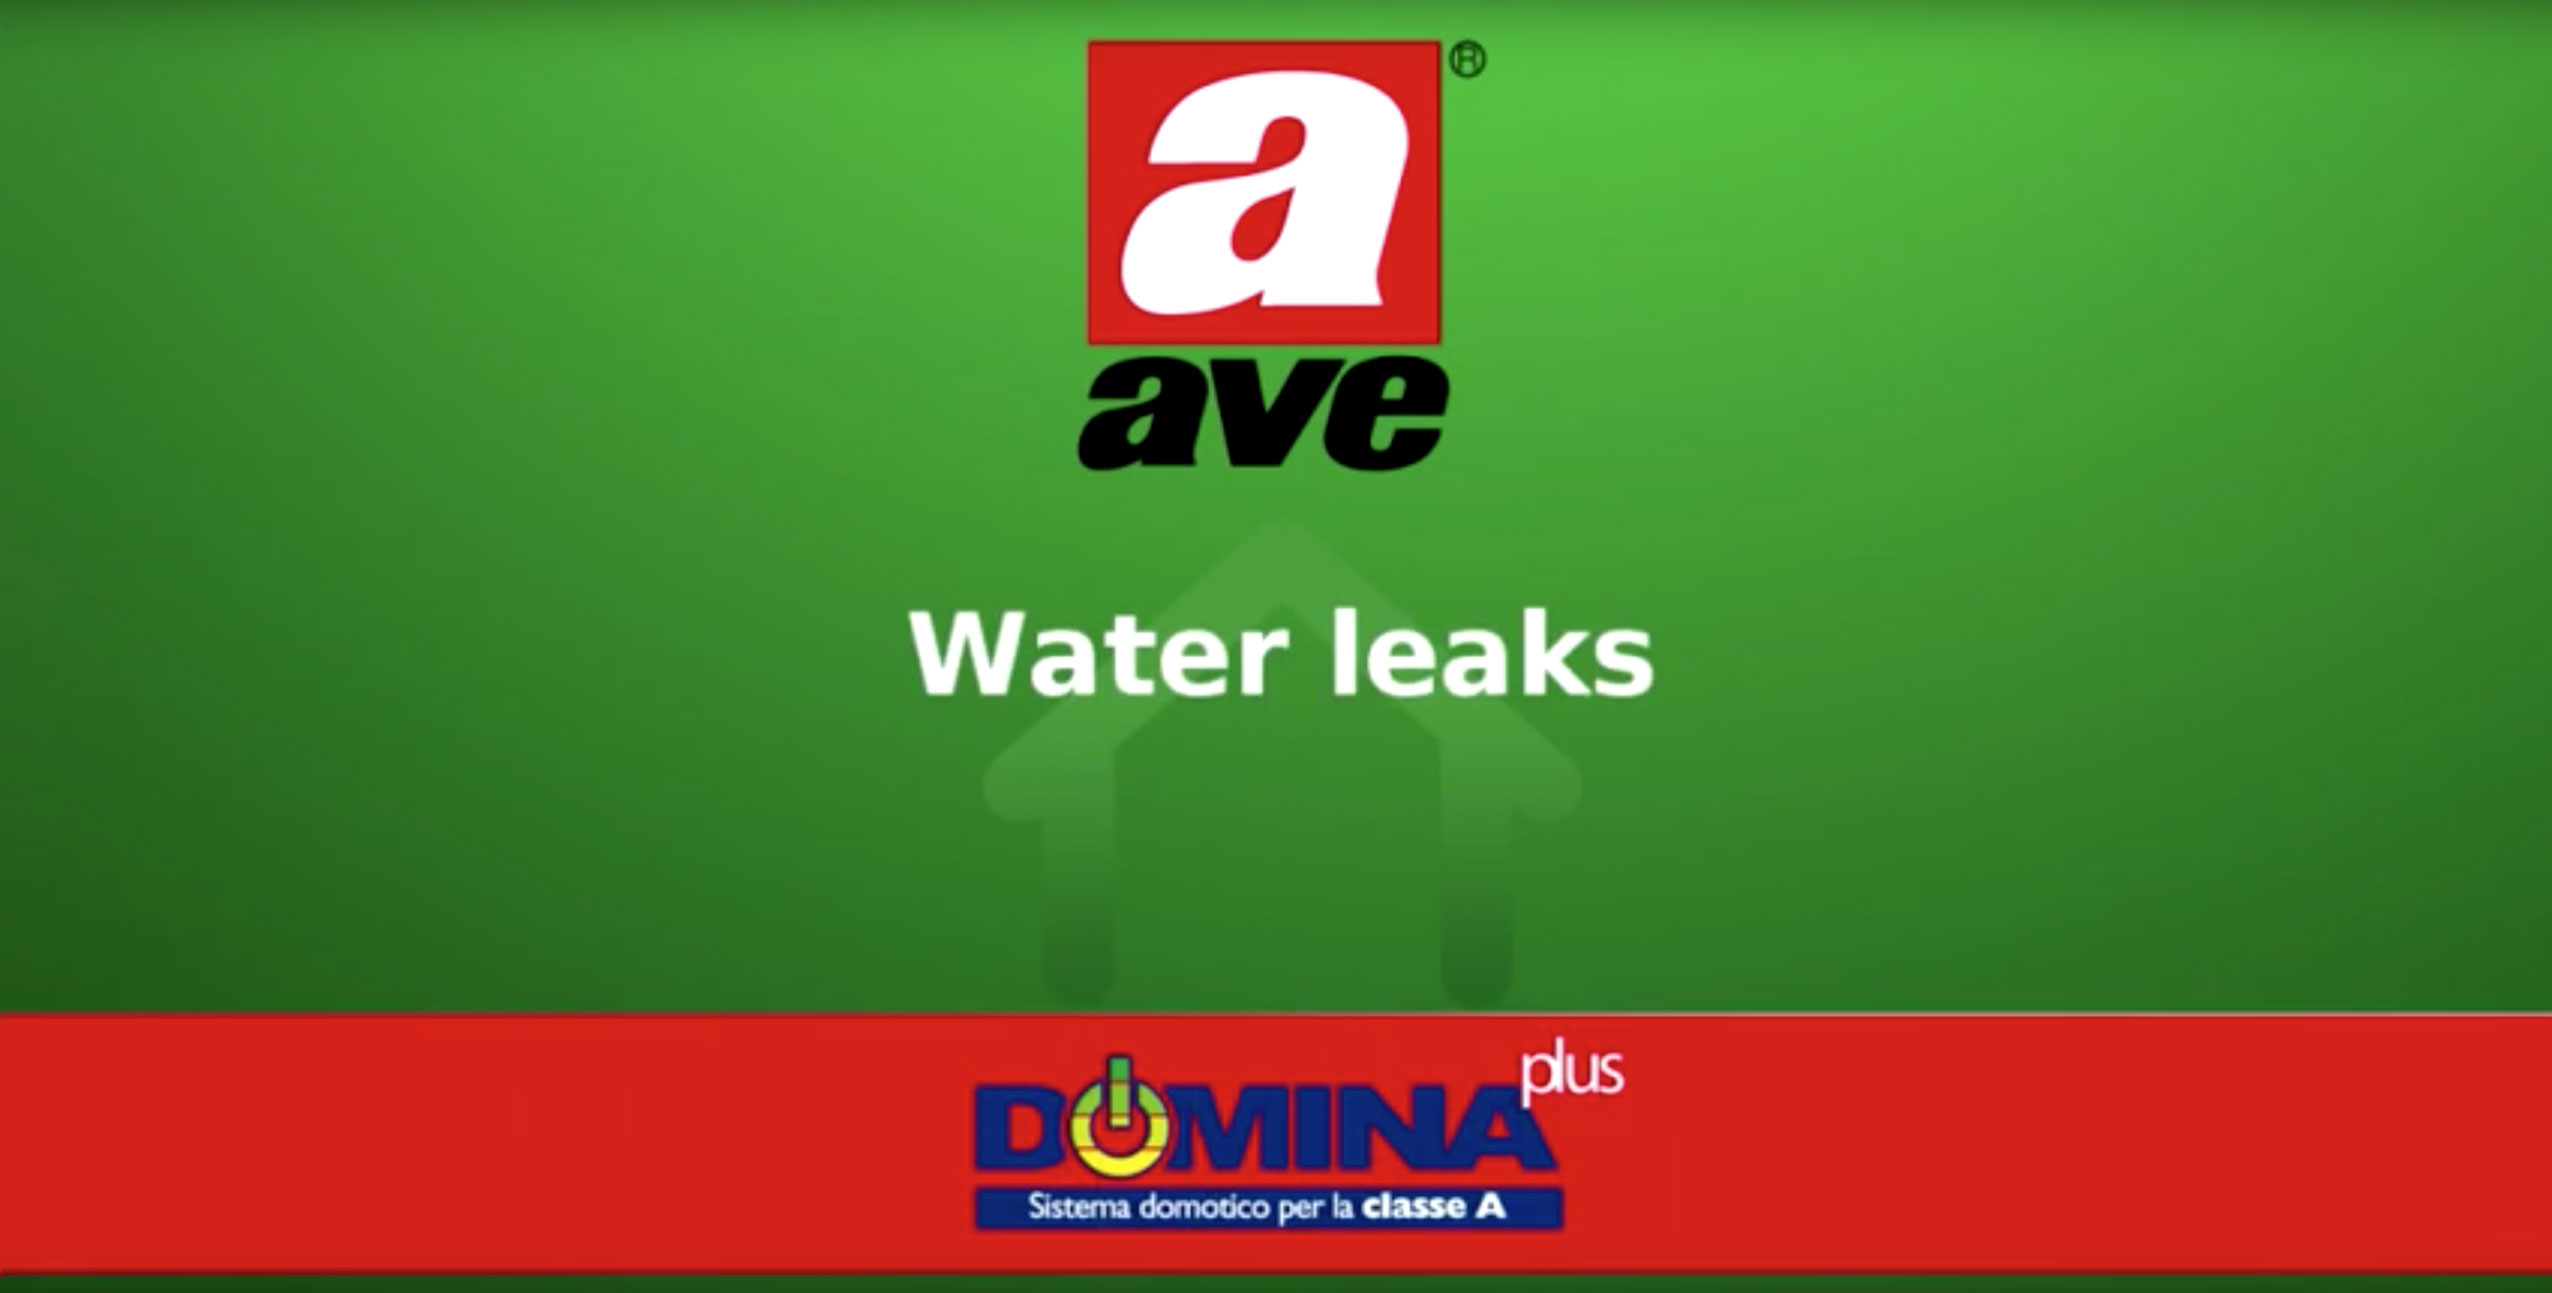 Home automation AVE DOMINA plus – Water leaks video